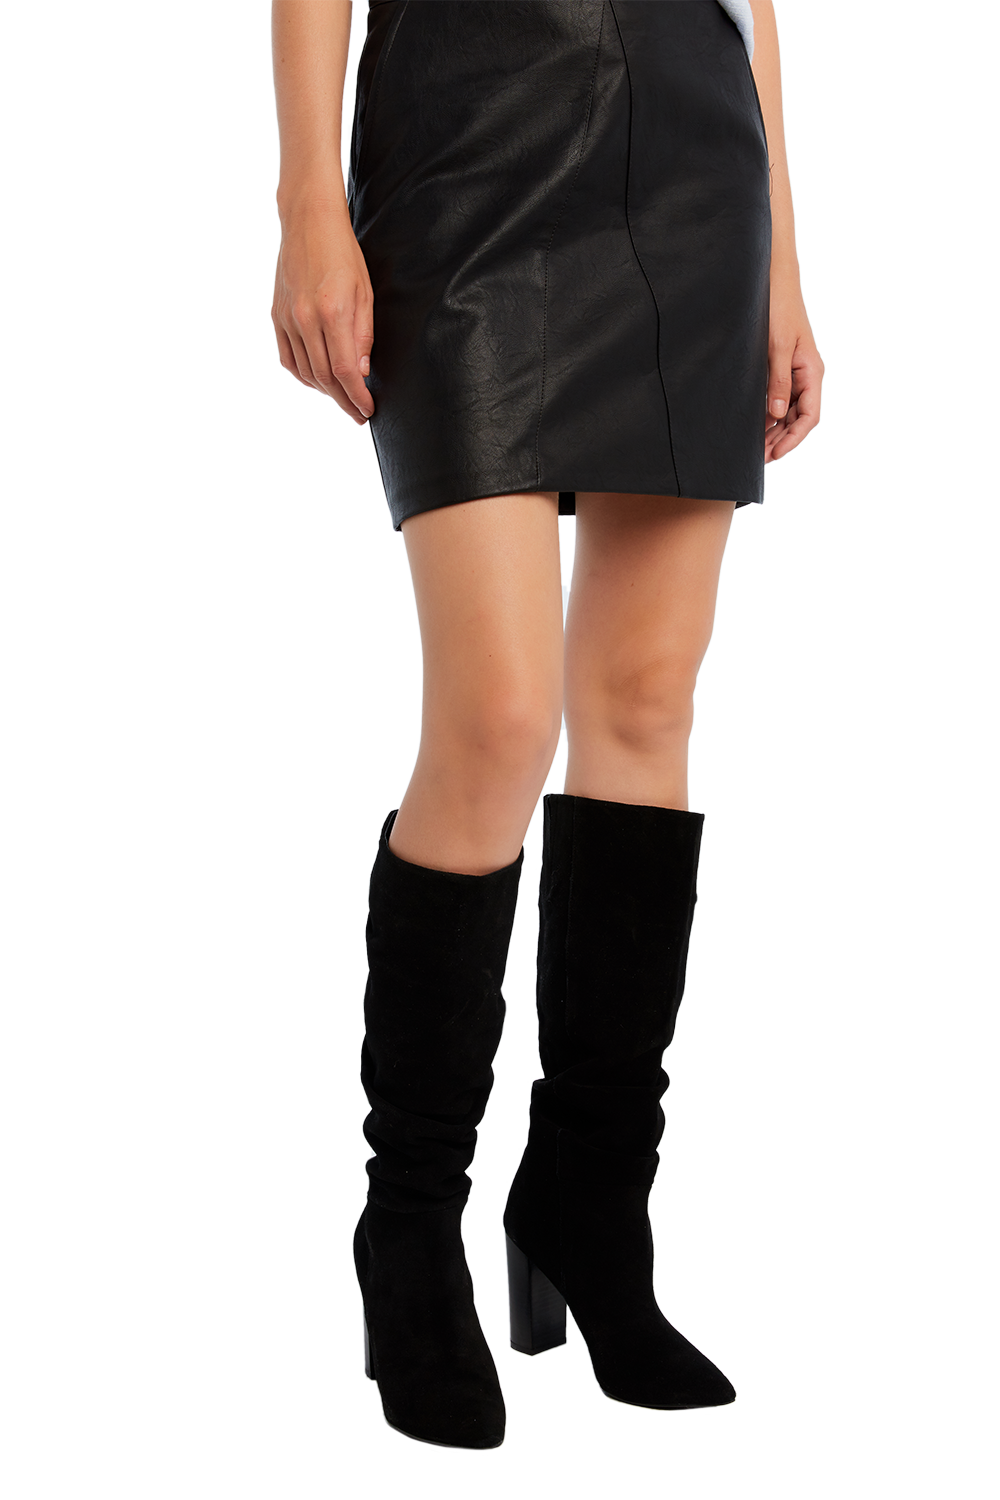 RUCHED KNEE BOOT in colour METEORITE